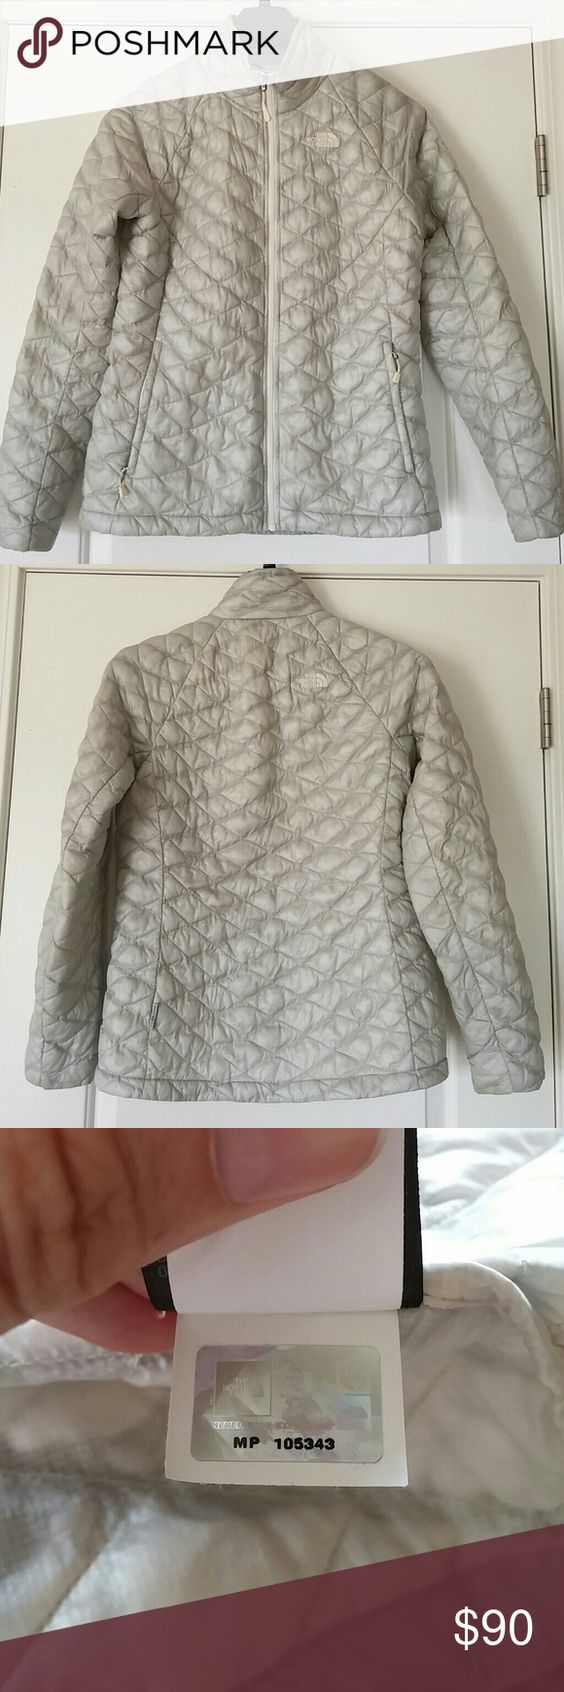 North Face Thermoball Jacket Light weight jacket. Perfect condition. Barely worn. Love it, but it's too big on me. North Face Jackets & Coats Puffers